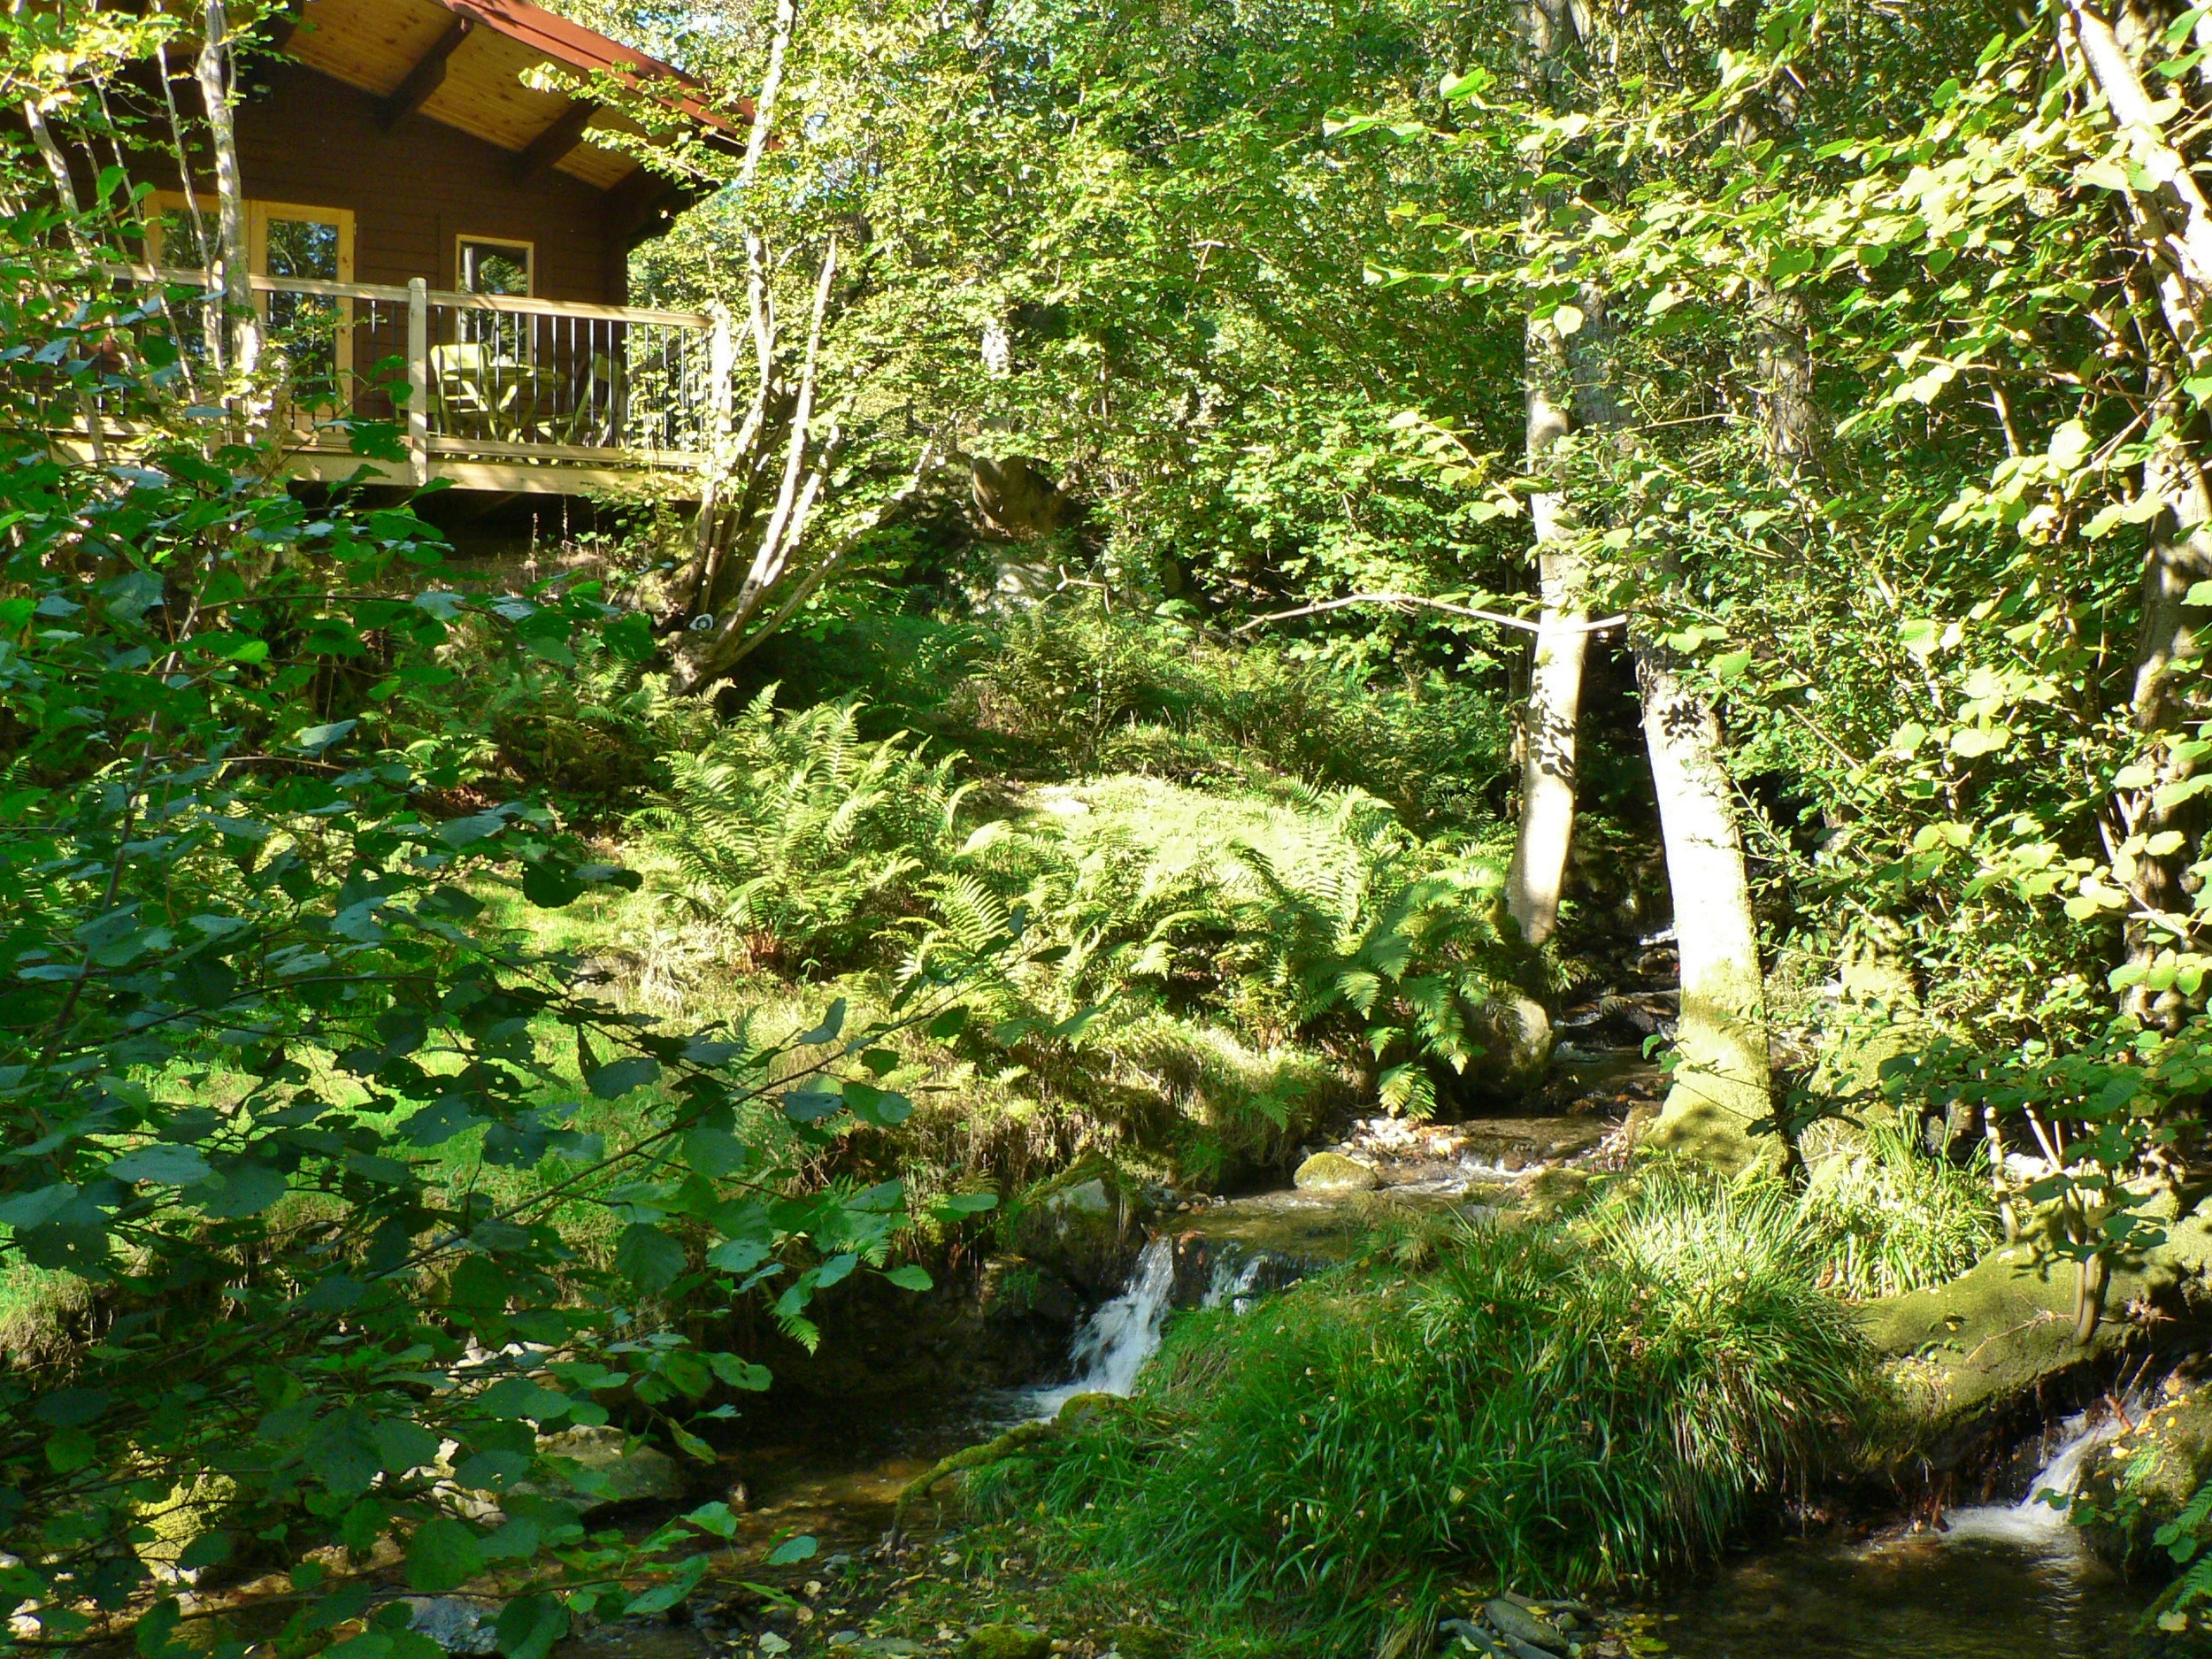 cabin by stream 0710.jpg